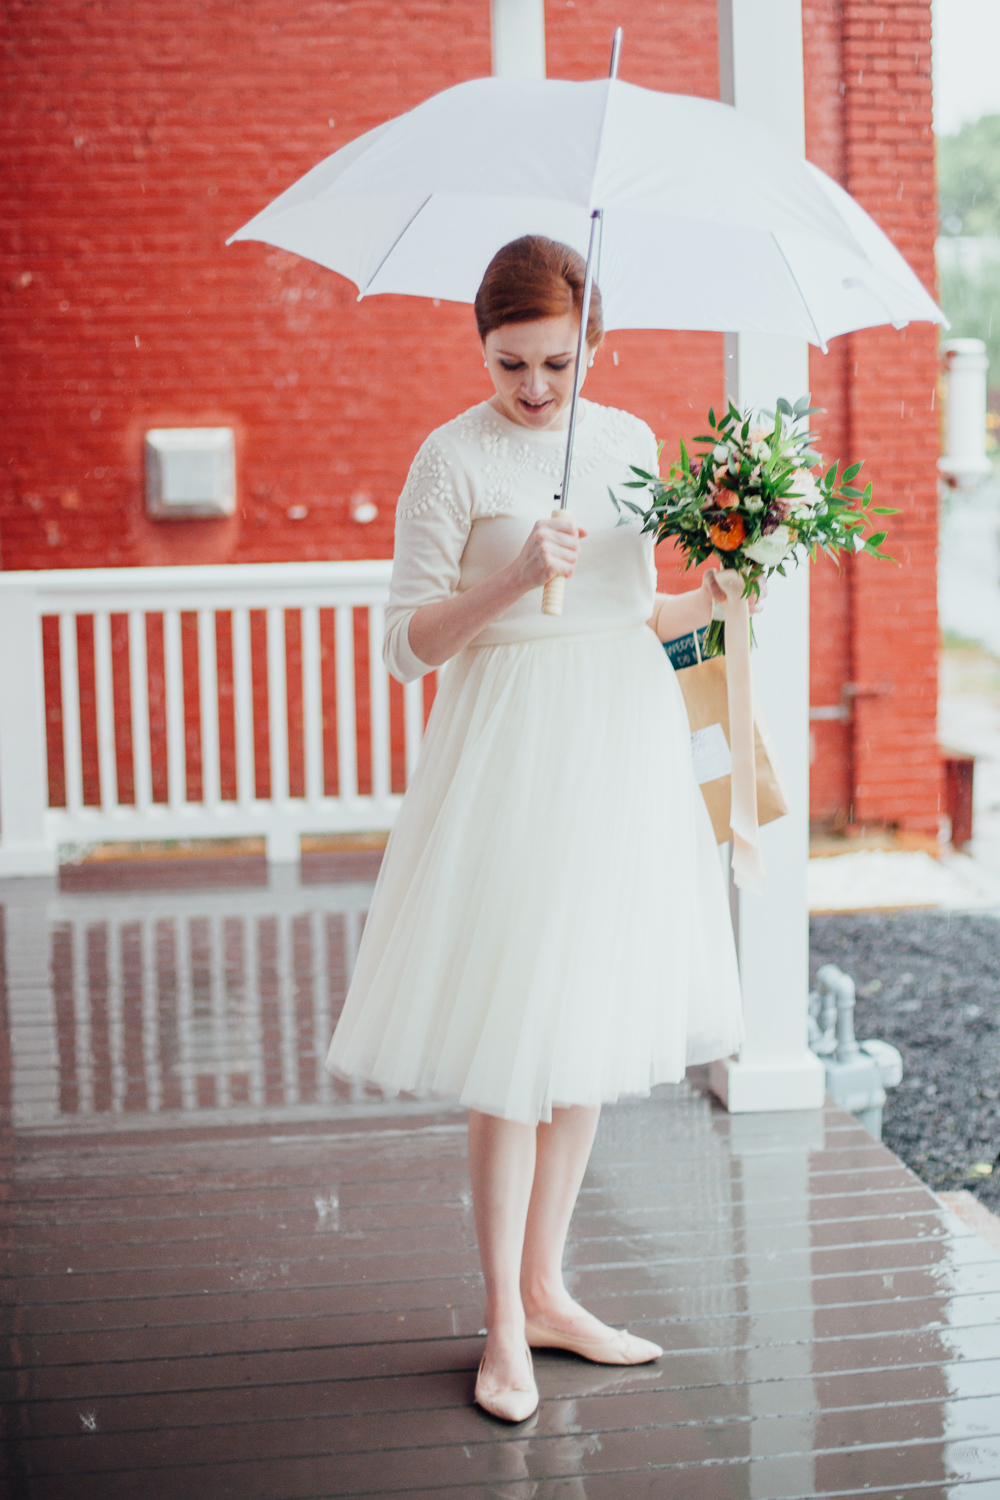 SarahMattozziPhotography-IntimateWedding-RichmondVA-93.jpg